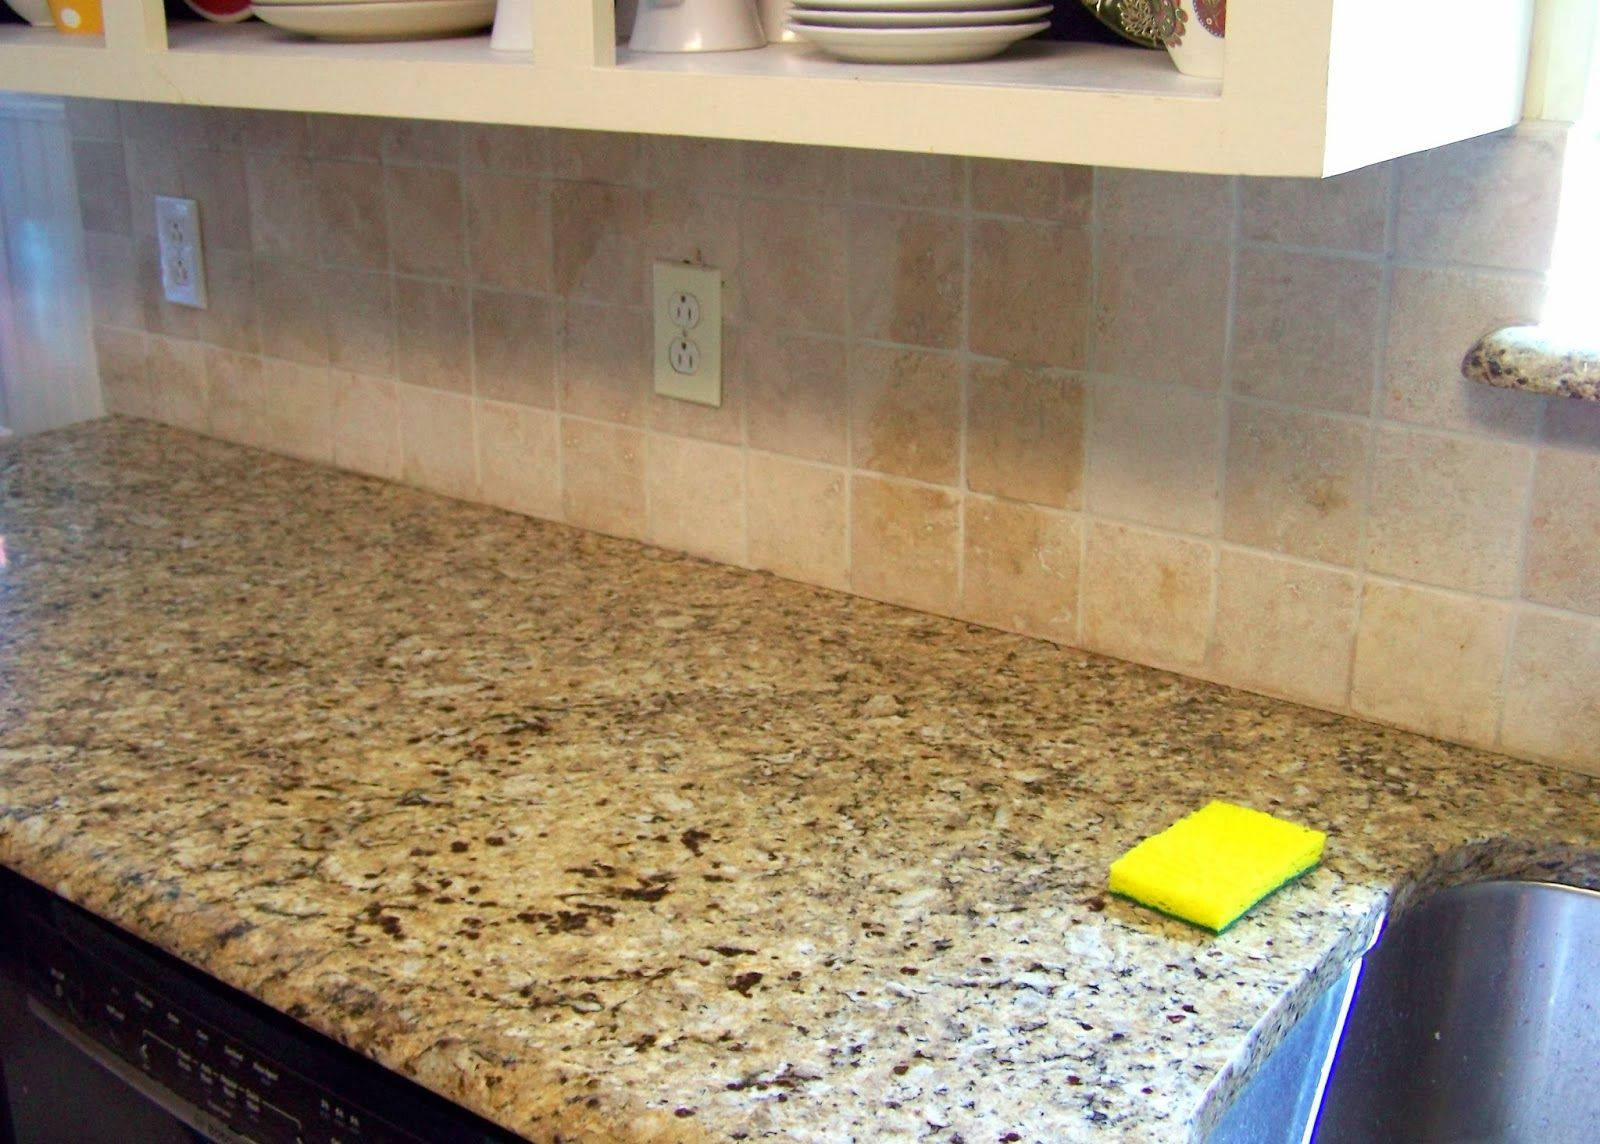 Spray Paint Tile Backsplash Decor Gallery Painted Cover Those Ugly Tiles  Make And Diy Source